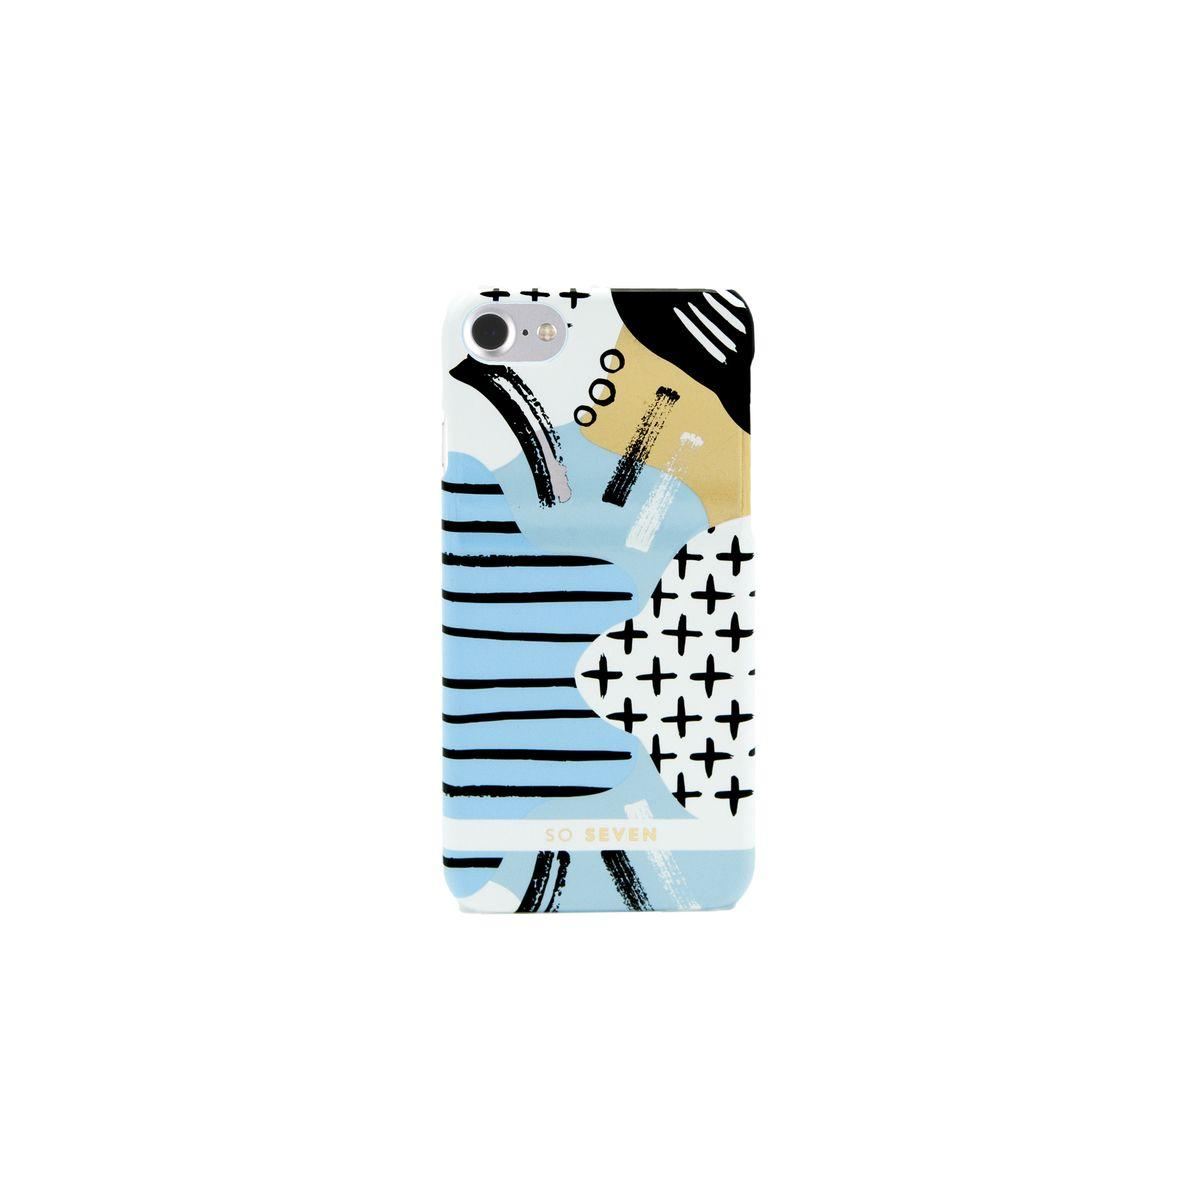 Coque so seven brooklin traits bleu apple iphone 7 - 10% de remise imm�diate avec le cod